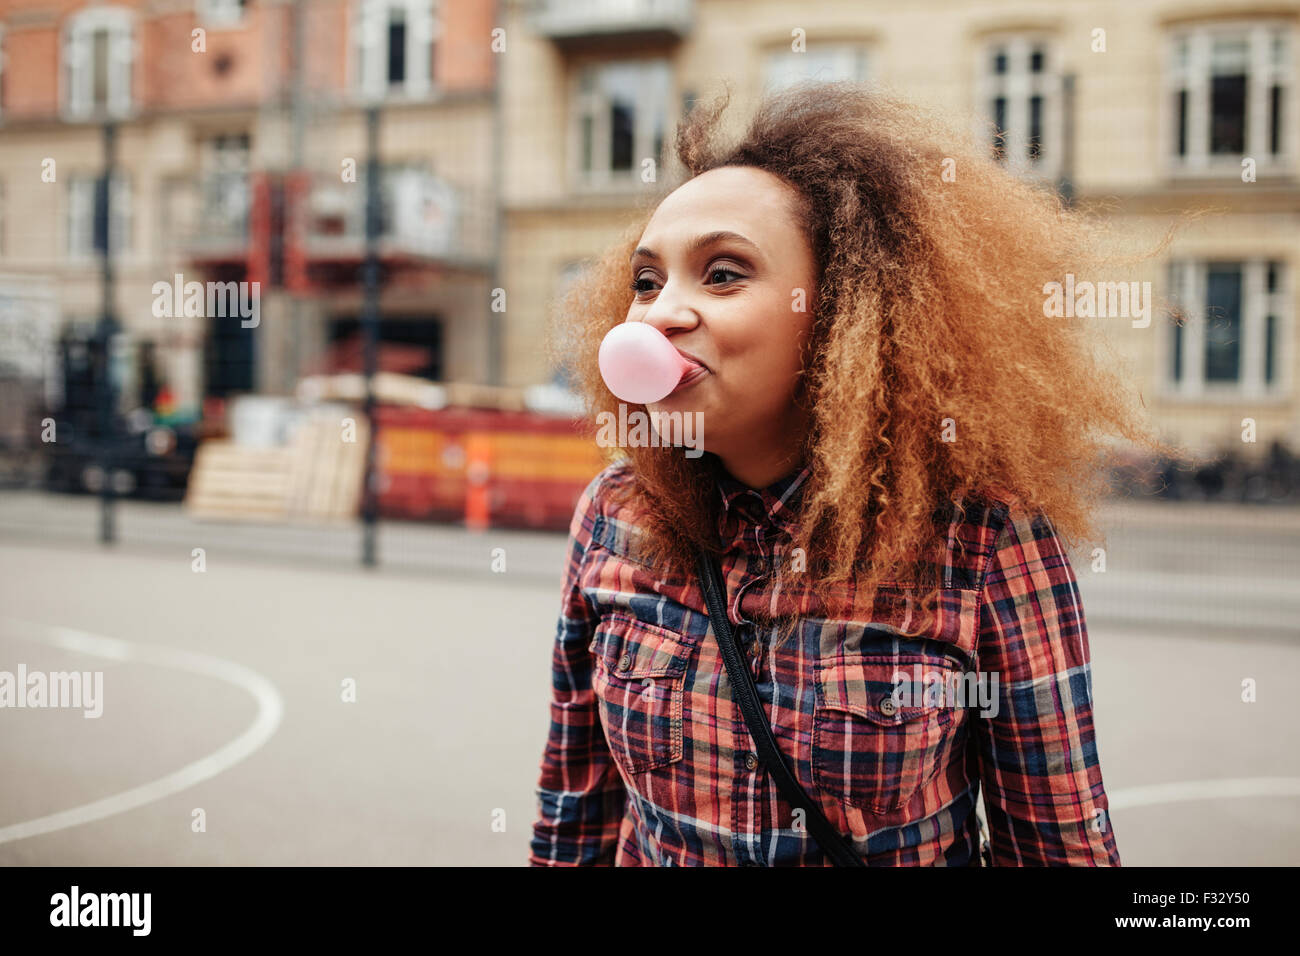 Jeune femme africaine souffle une bulle avec son chewing-gum. Casual young woman on city street s'amusant. Photo Stock